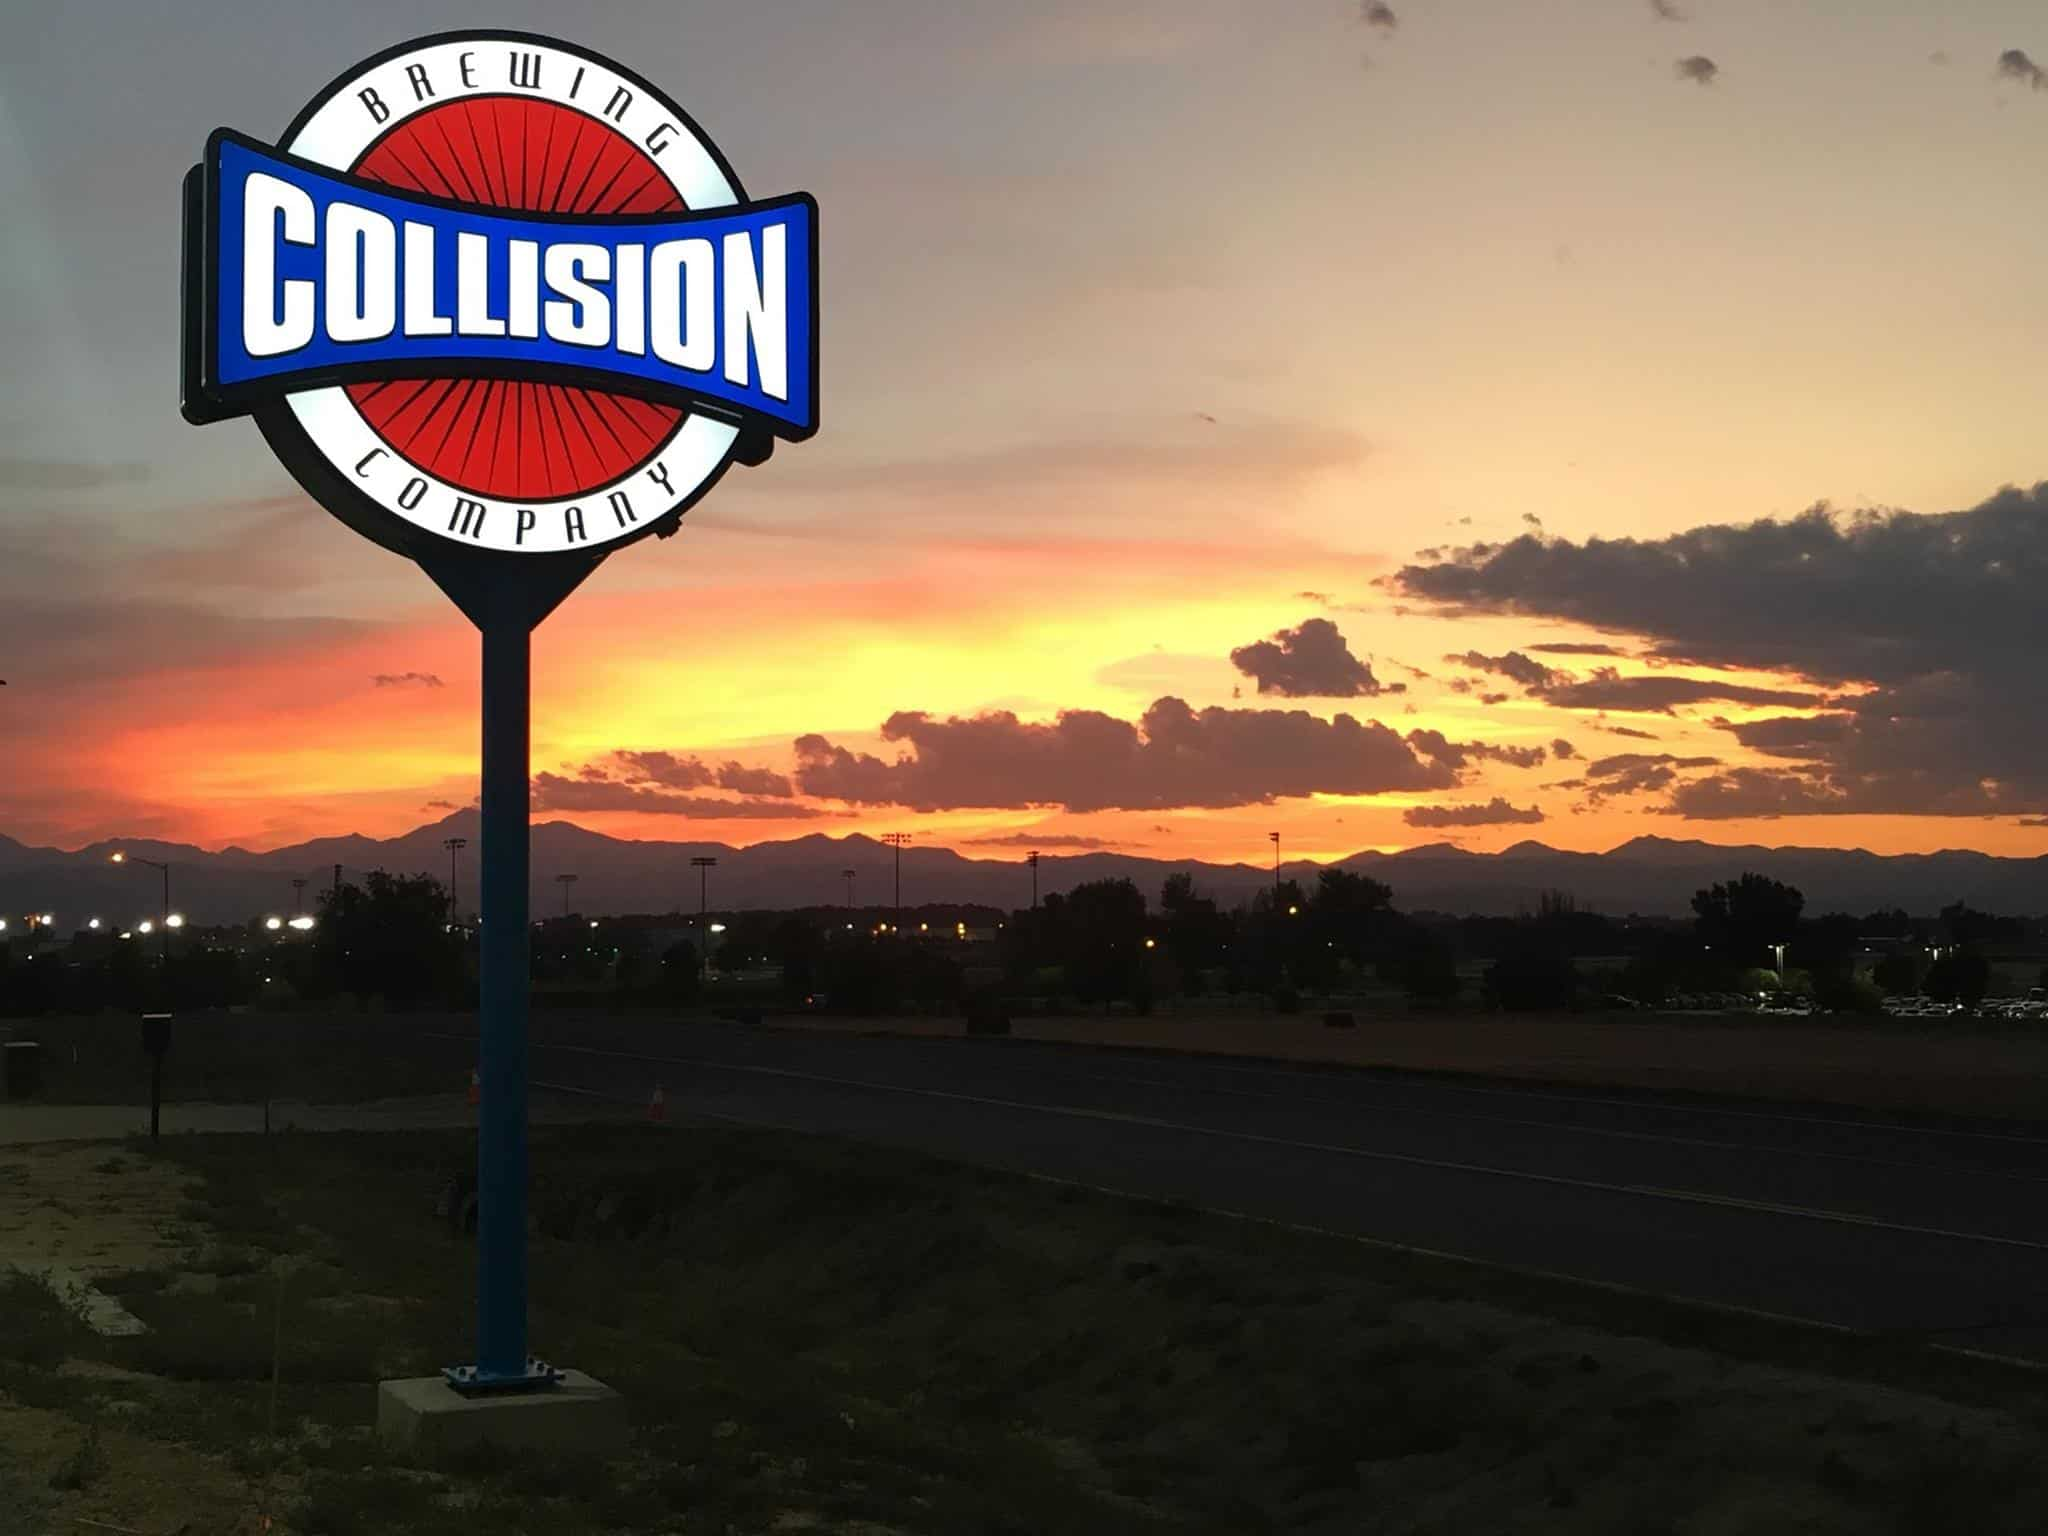 Collision Brewing Company (coming soon)